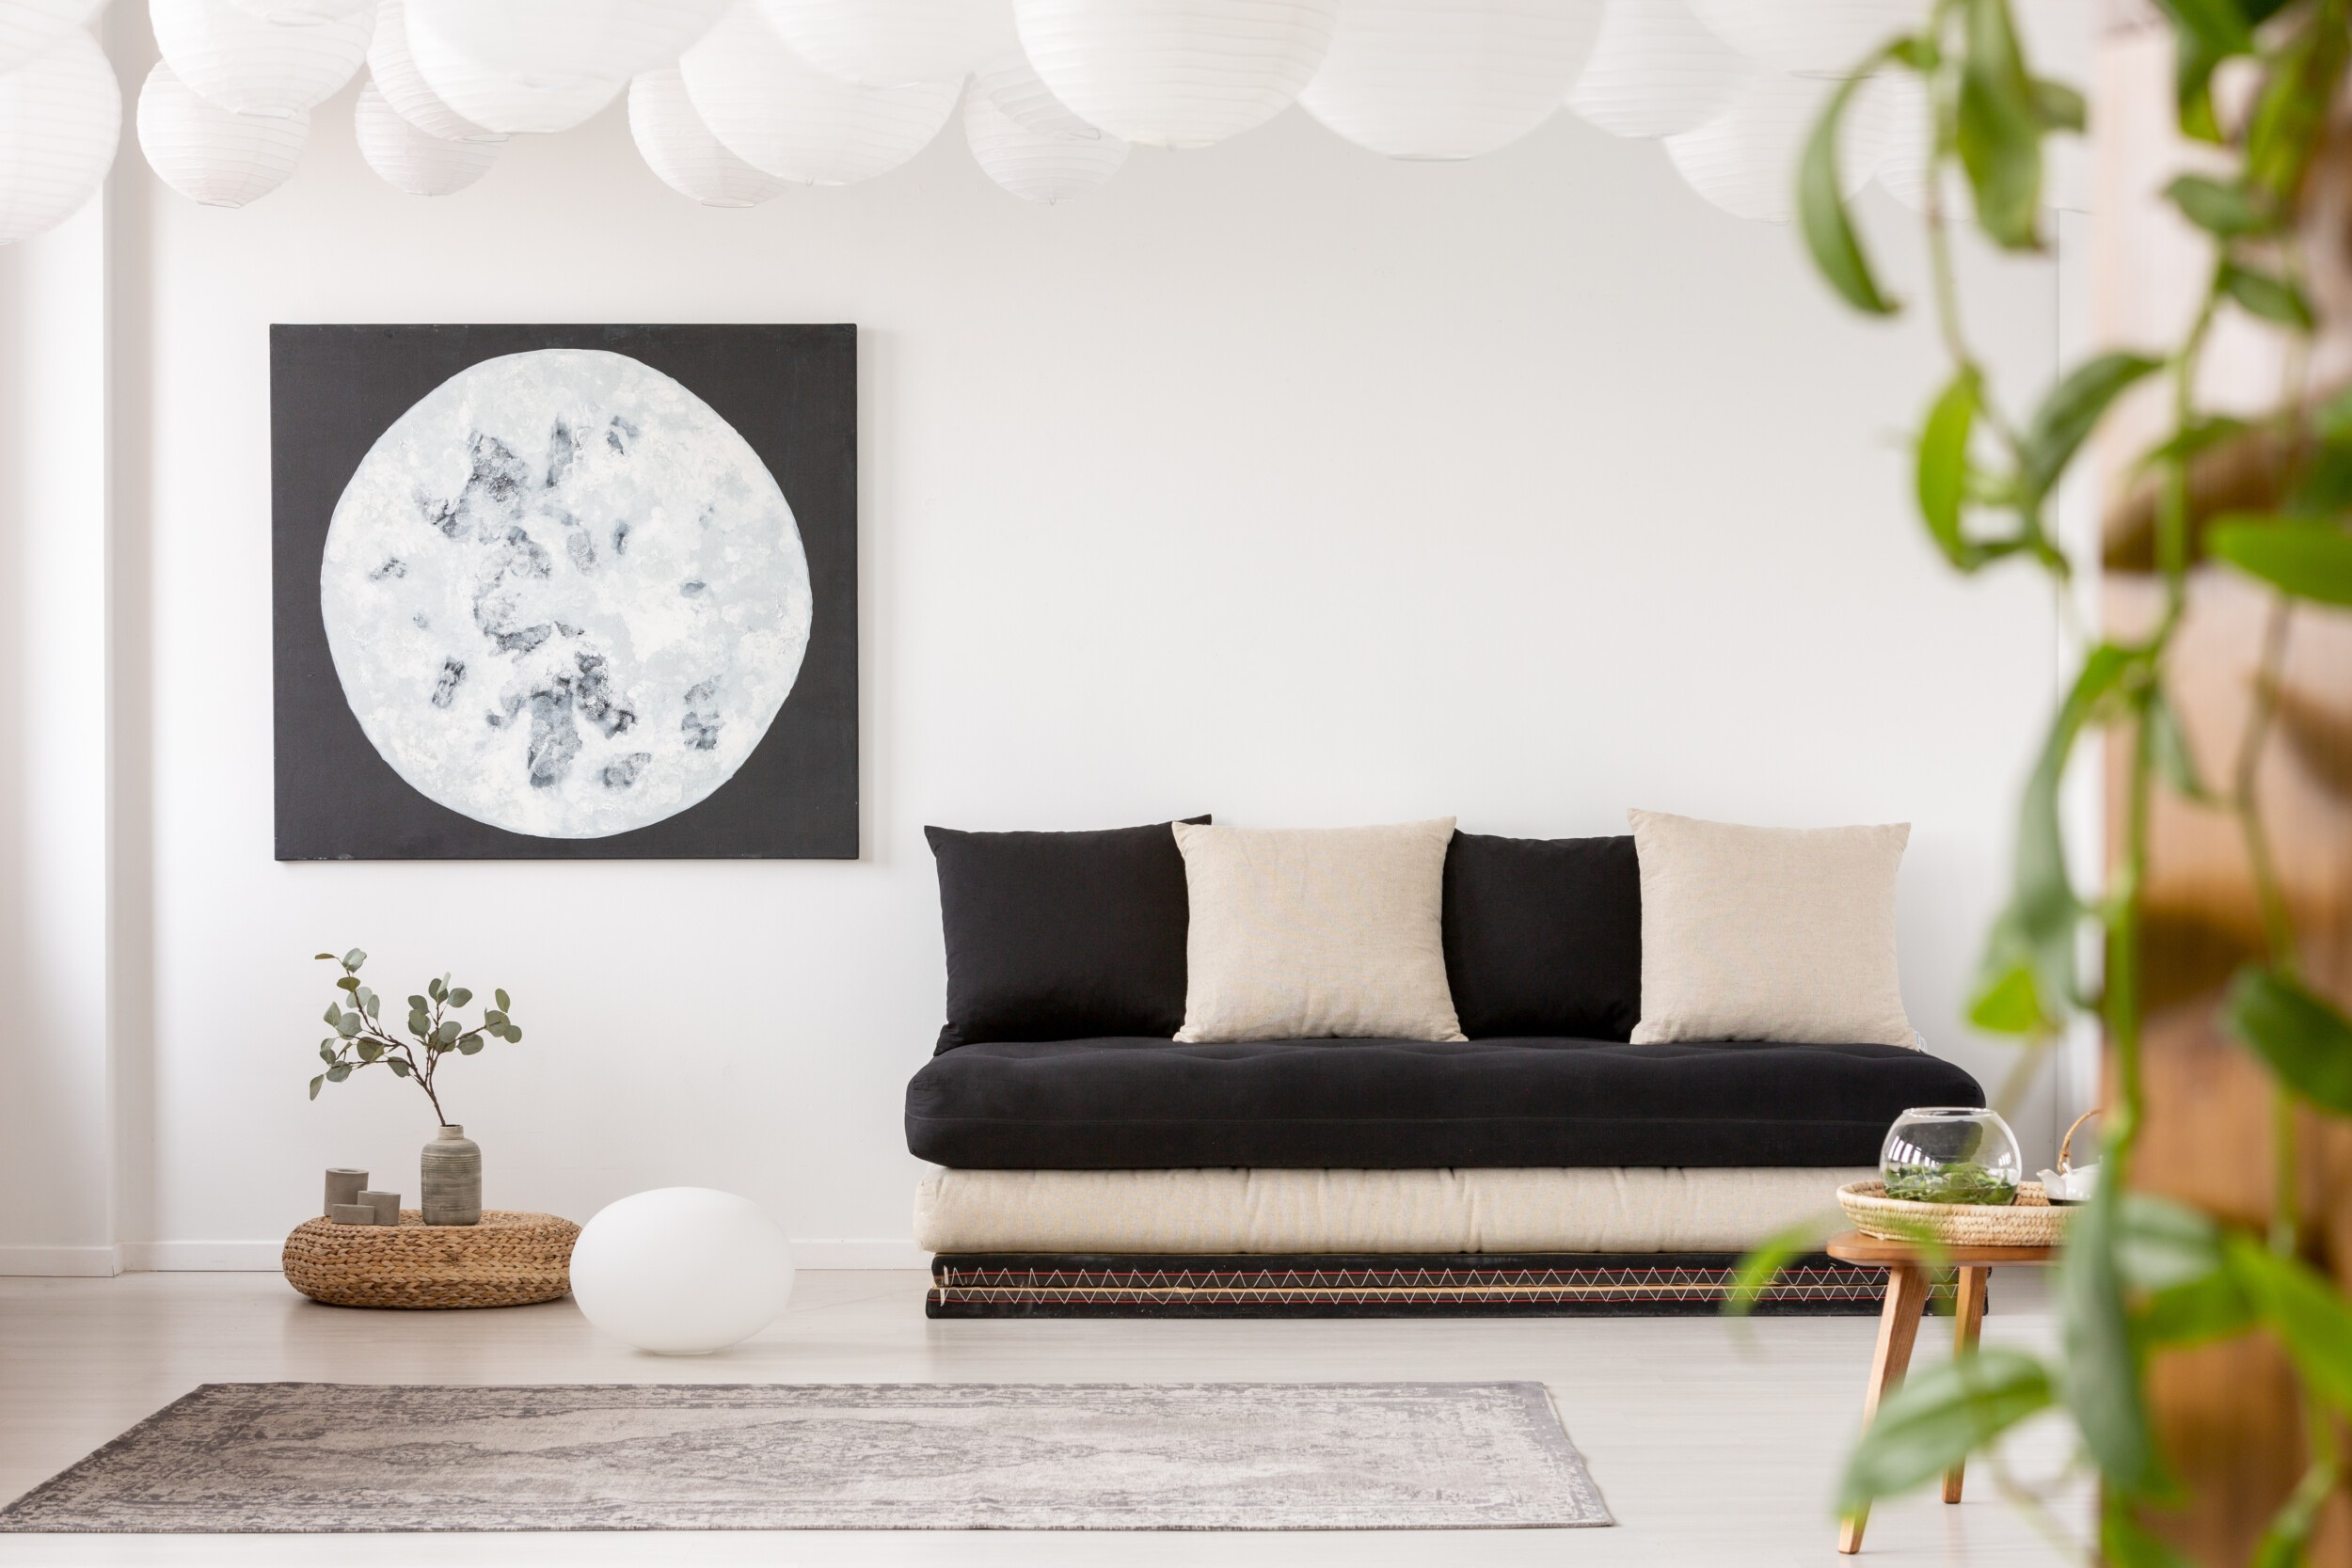 Pillows on black sofa in white living room interior with moon poster and grey carpet